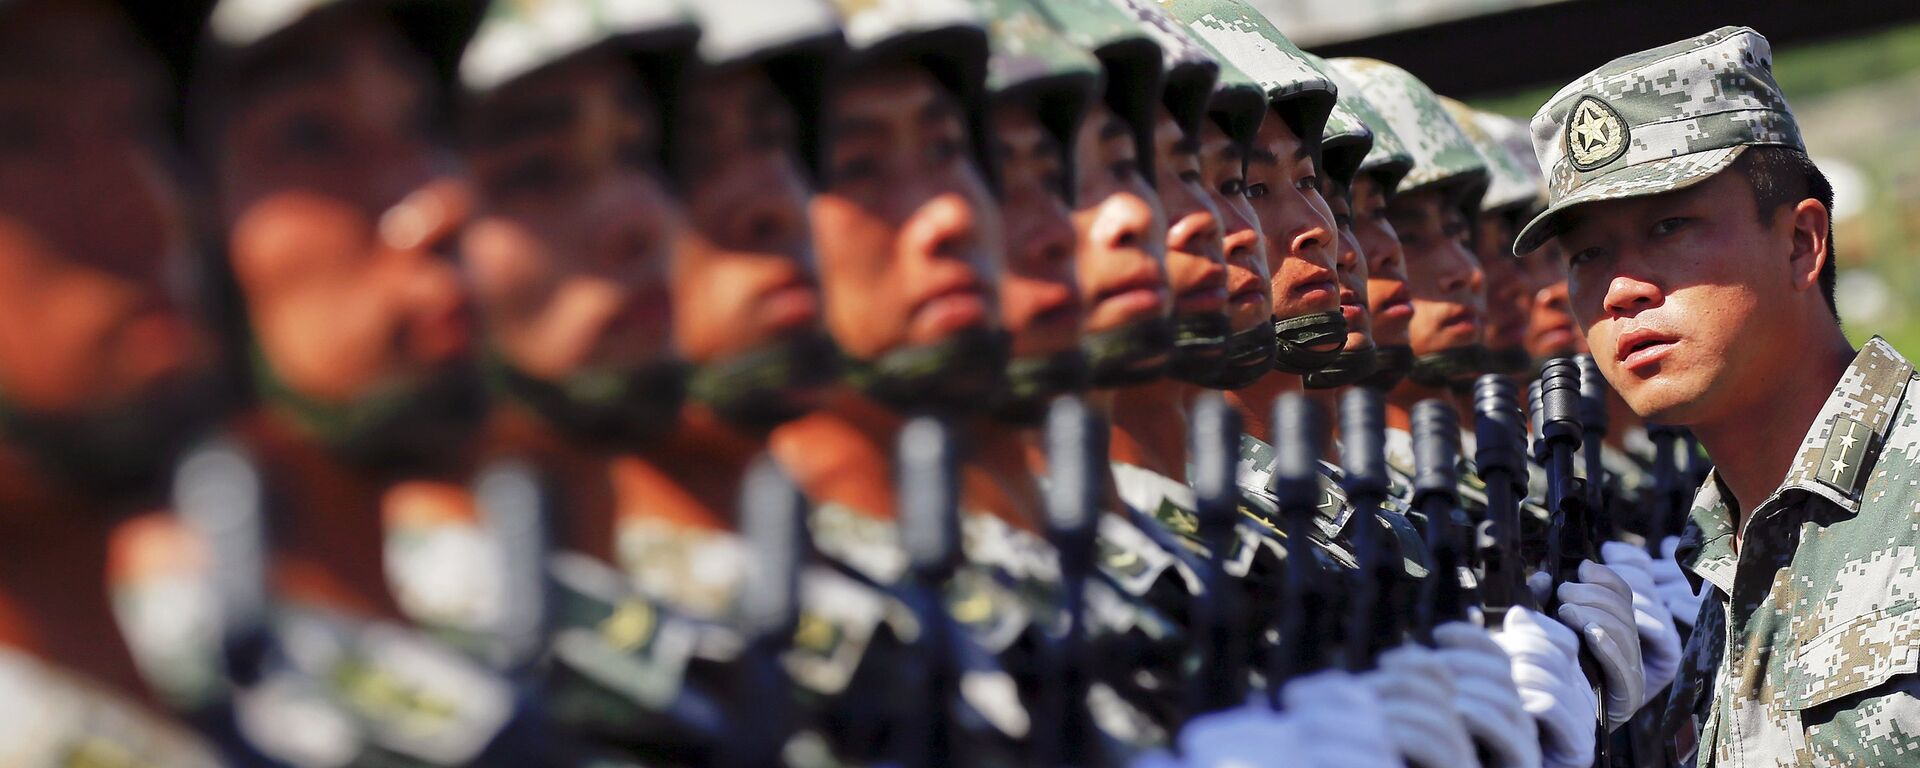 An officer gives instructions as soldiers of China's People's Liberation Army form a line during a training session for a military parade to mark the 70th anniversary of the end of World War Two, at a military base in Beijing, China, August 22, 2015 - Sputnik Italia, 1920, 02.07.2021